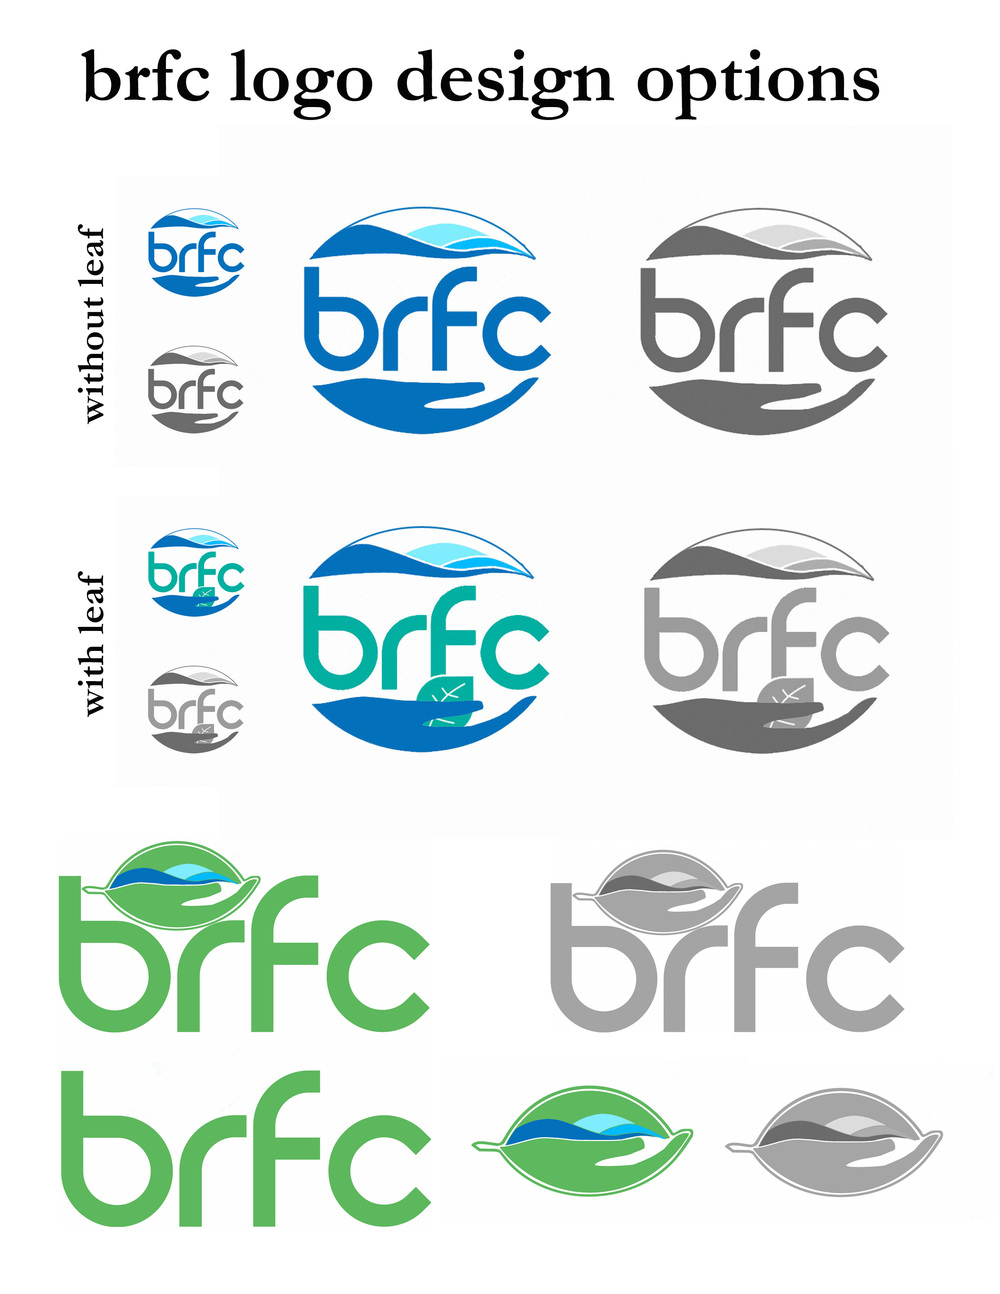 brfc logo design options.jpg